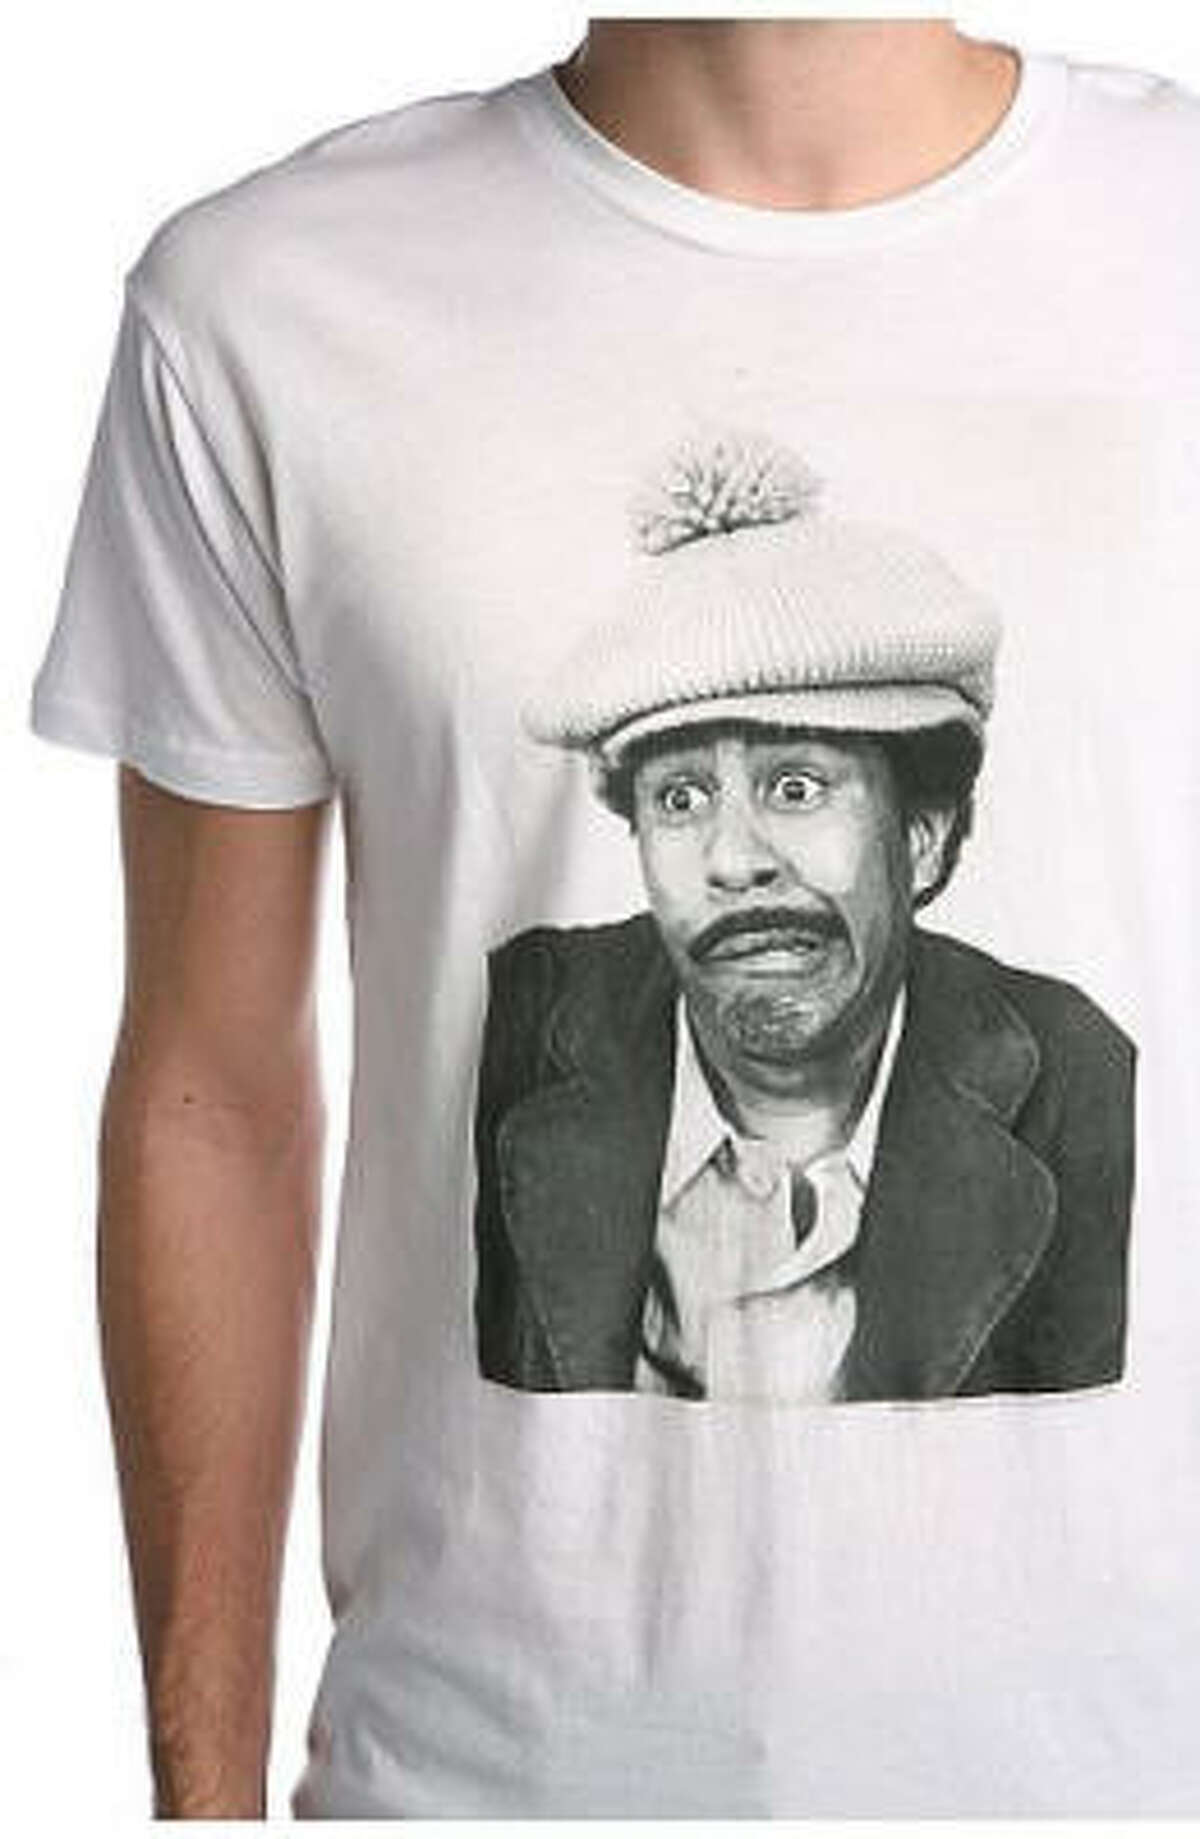 A graphic tee featuring comedian Richard Pryor